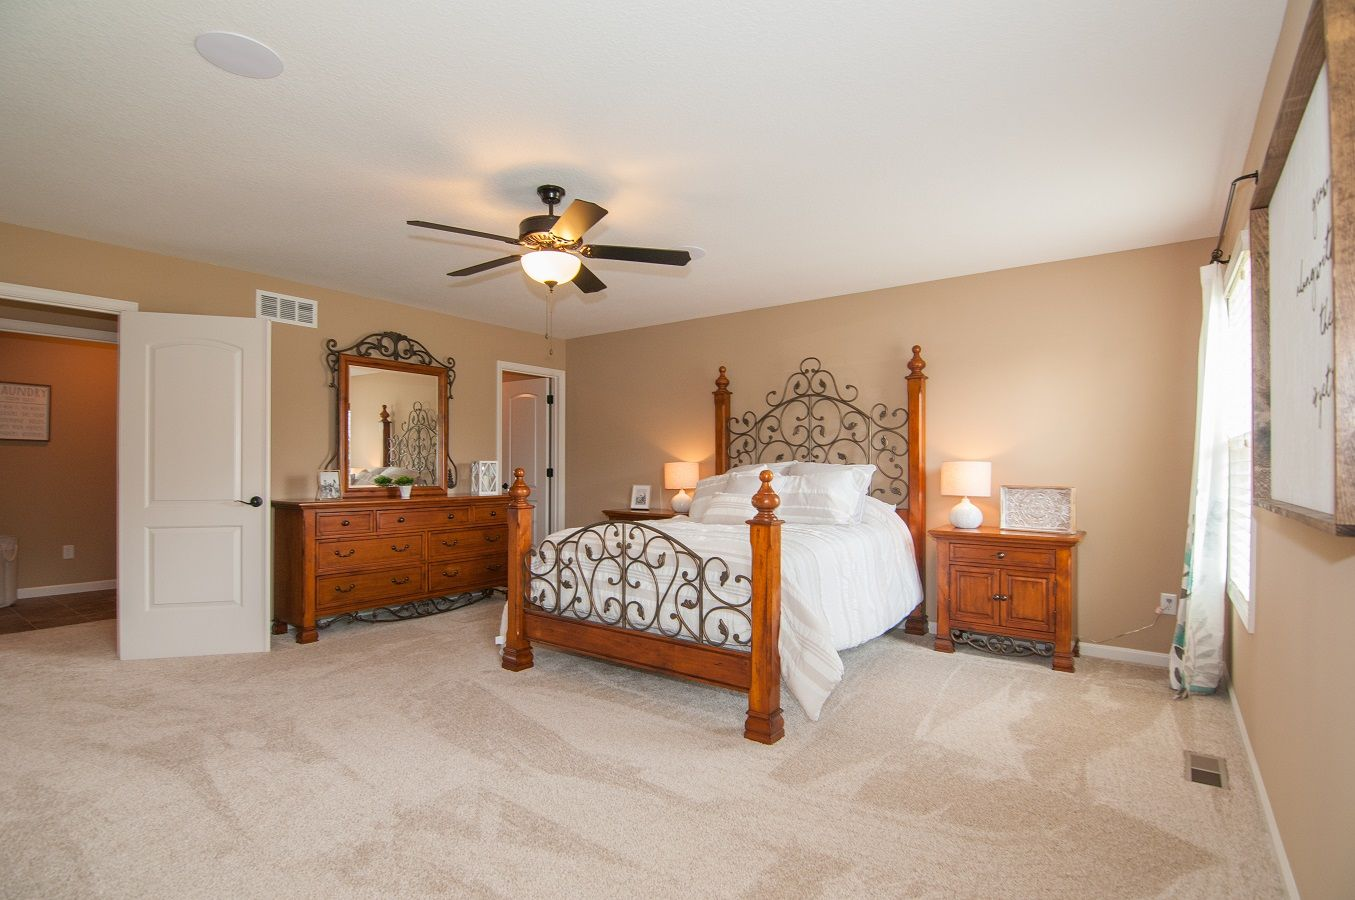 Bedroom featured in the Denali By D.R. Horton in Fort Wayne, IN